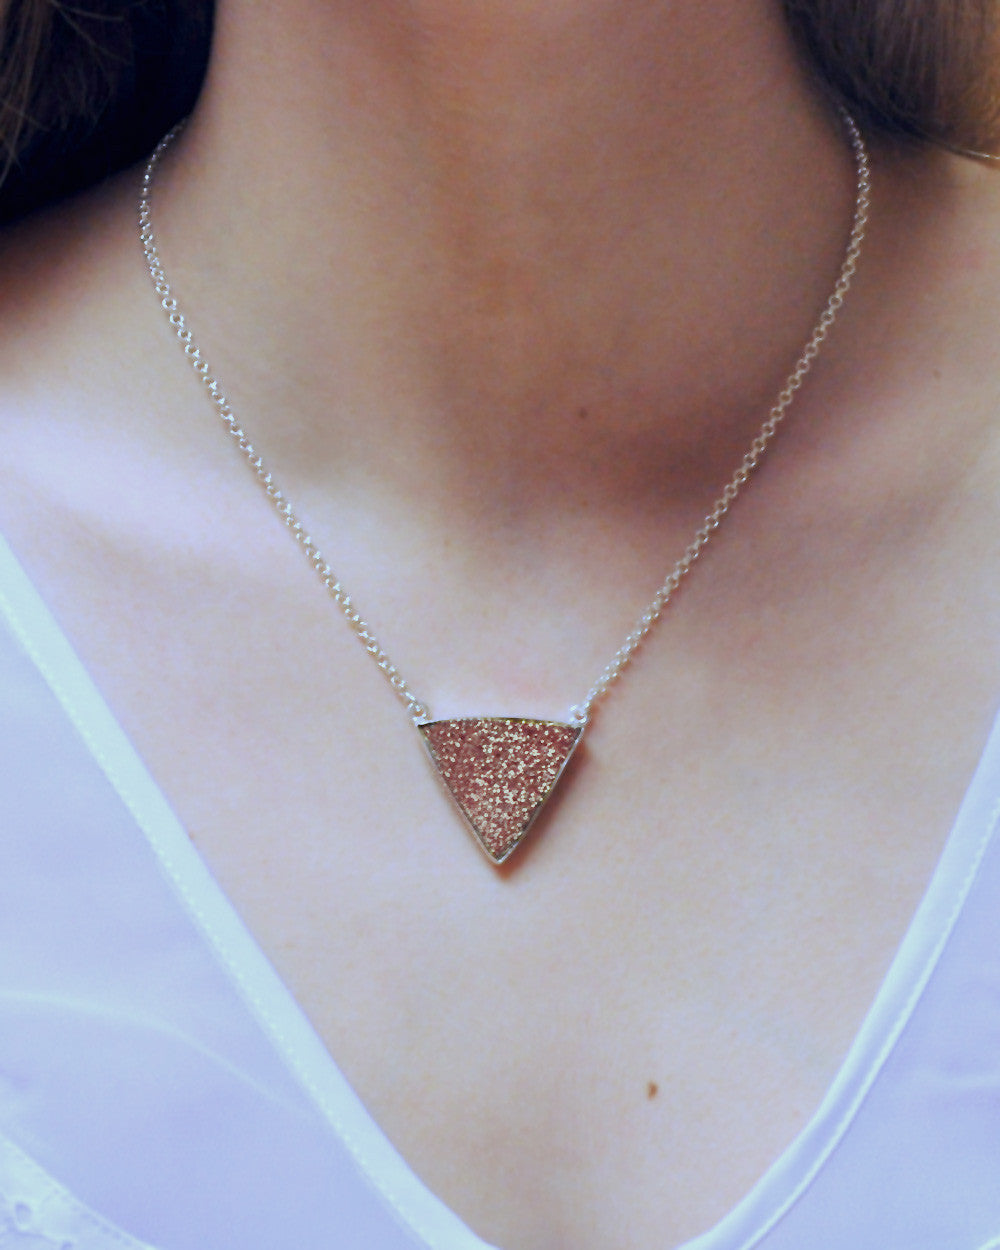 Trilogy Druzy Necklace in Sterling Silver - Sivalya